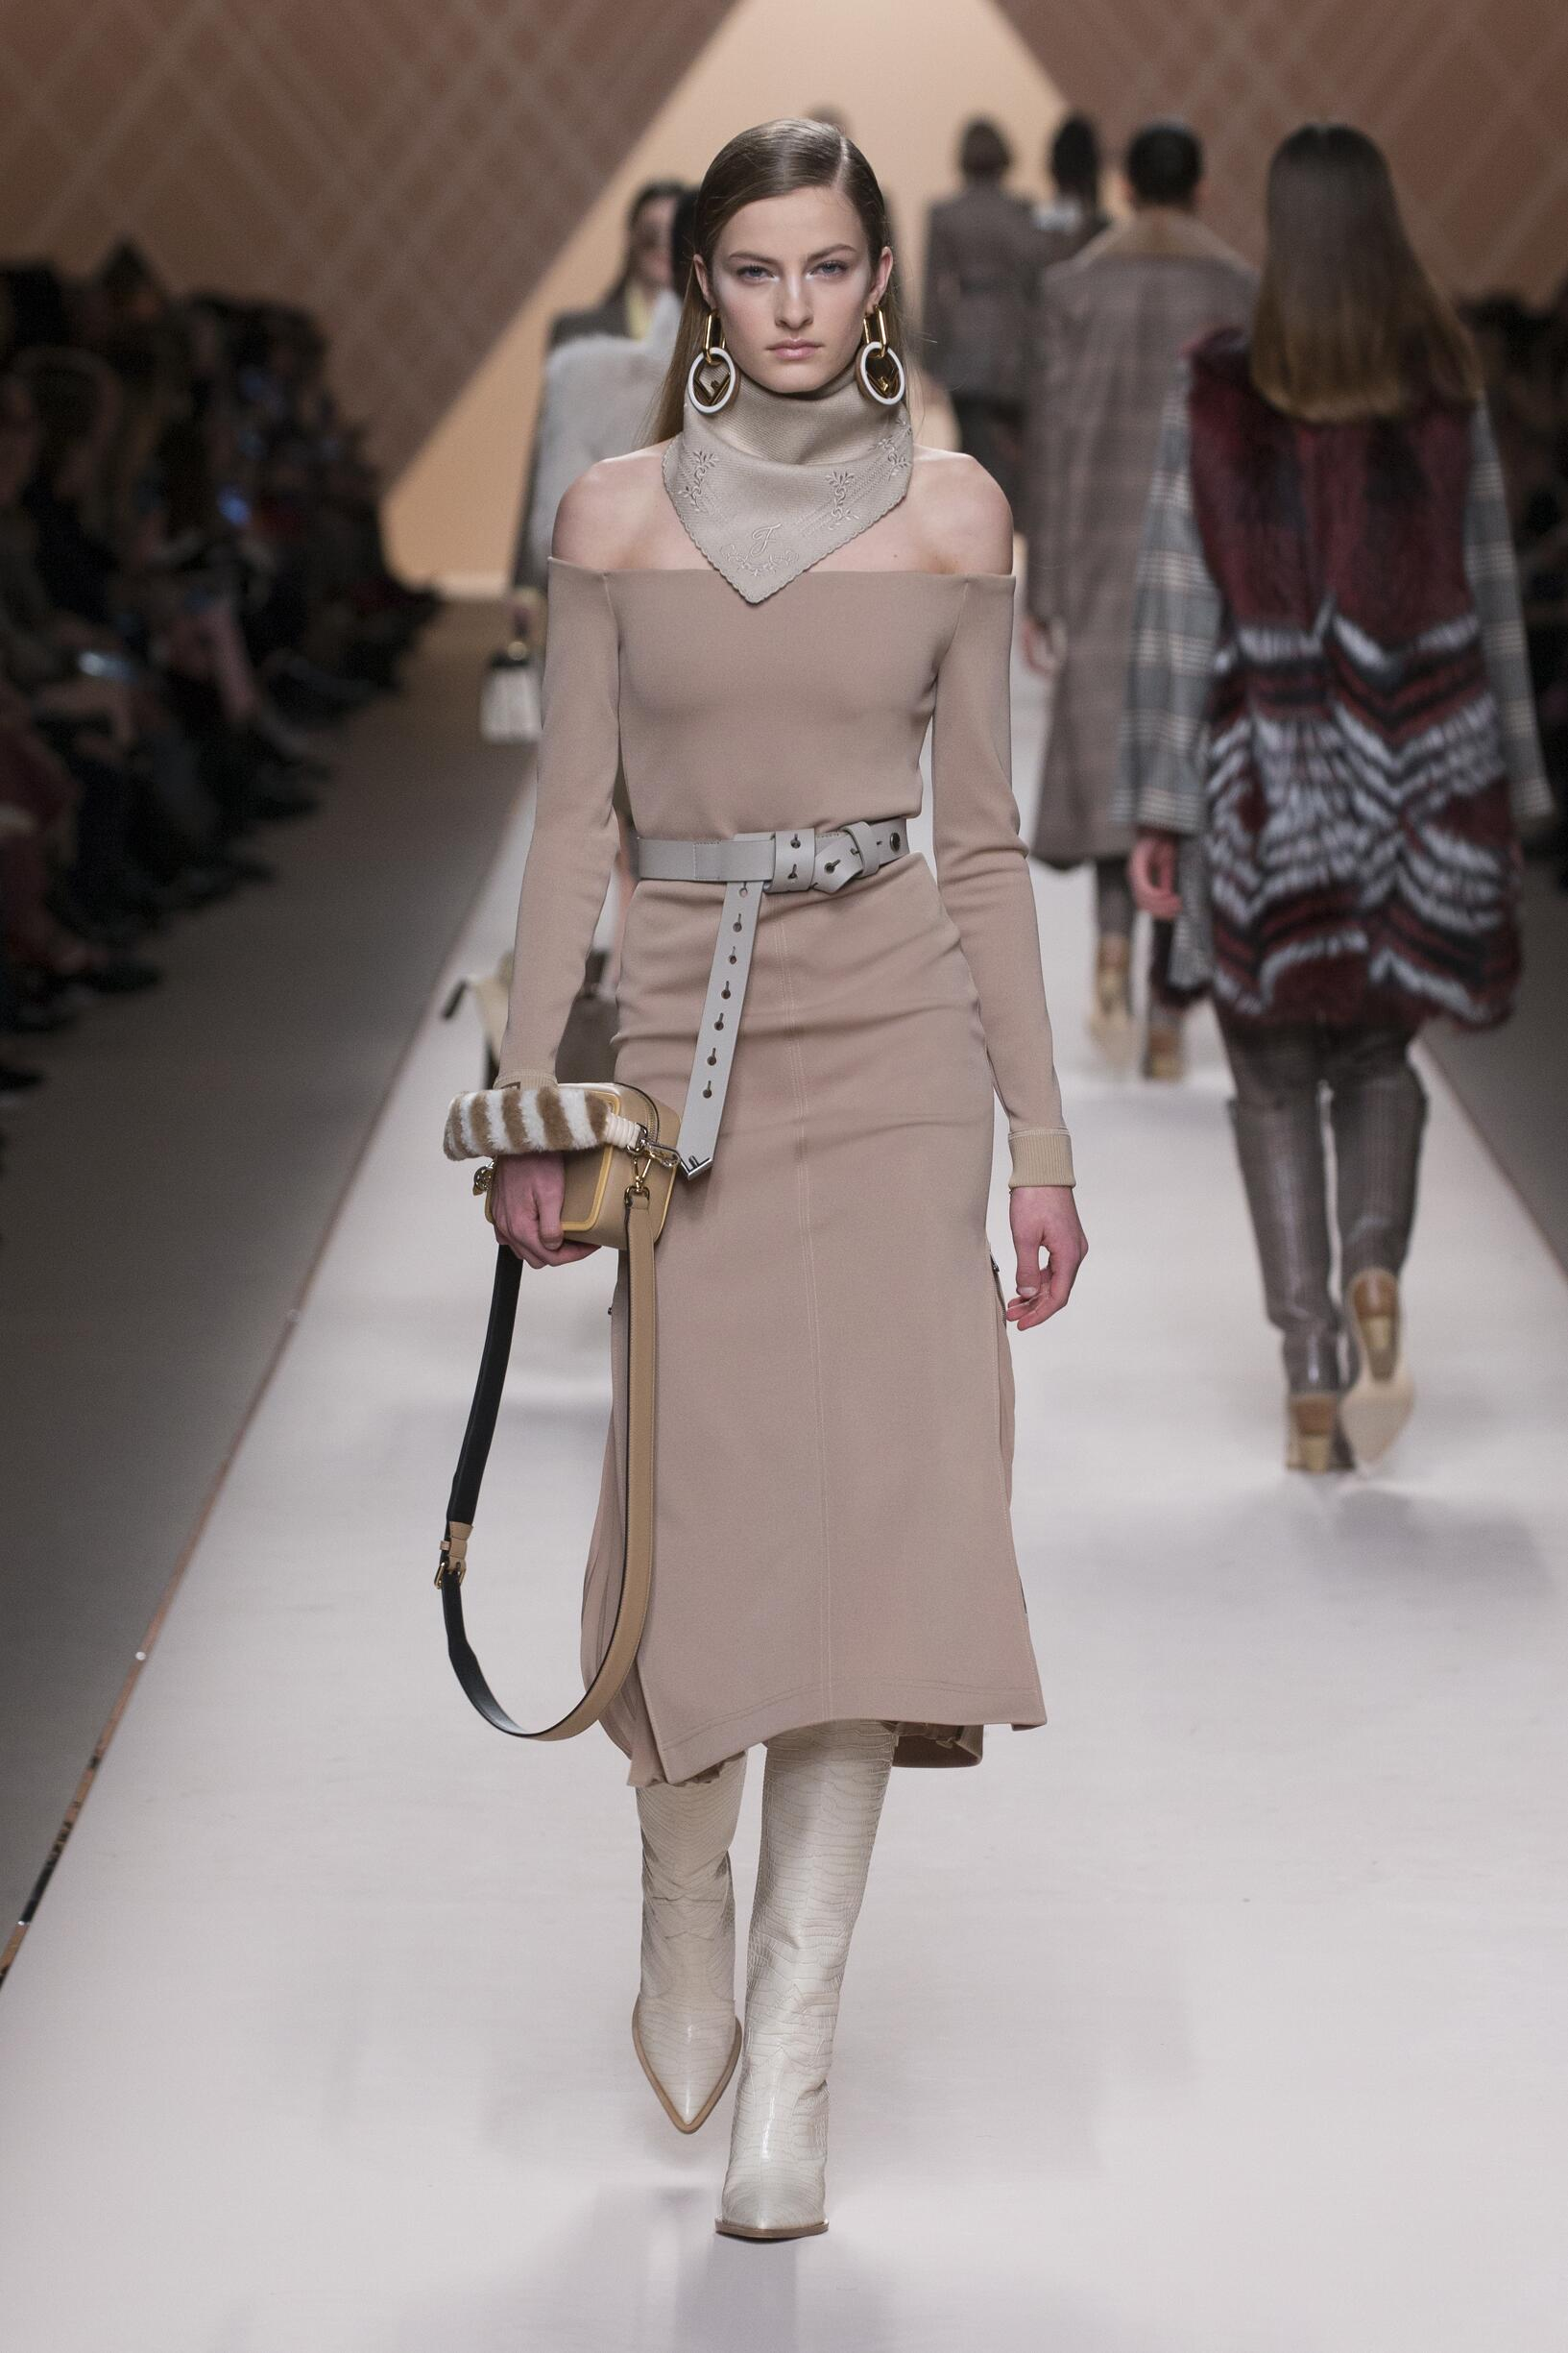 Runway Fendi Fall Winter 2018 Women's Collection Milan Fashion Week